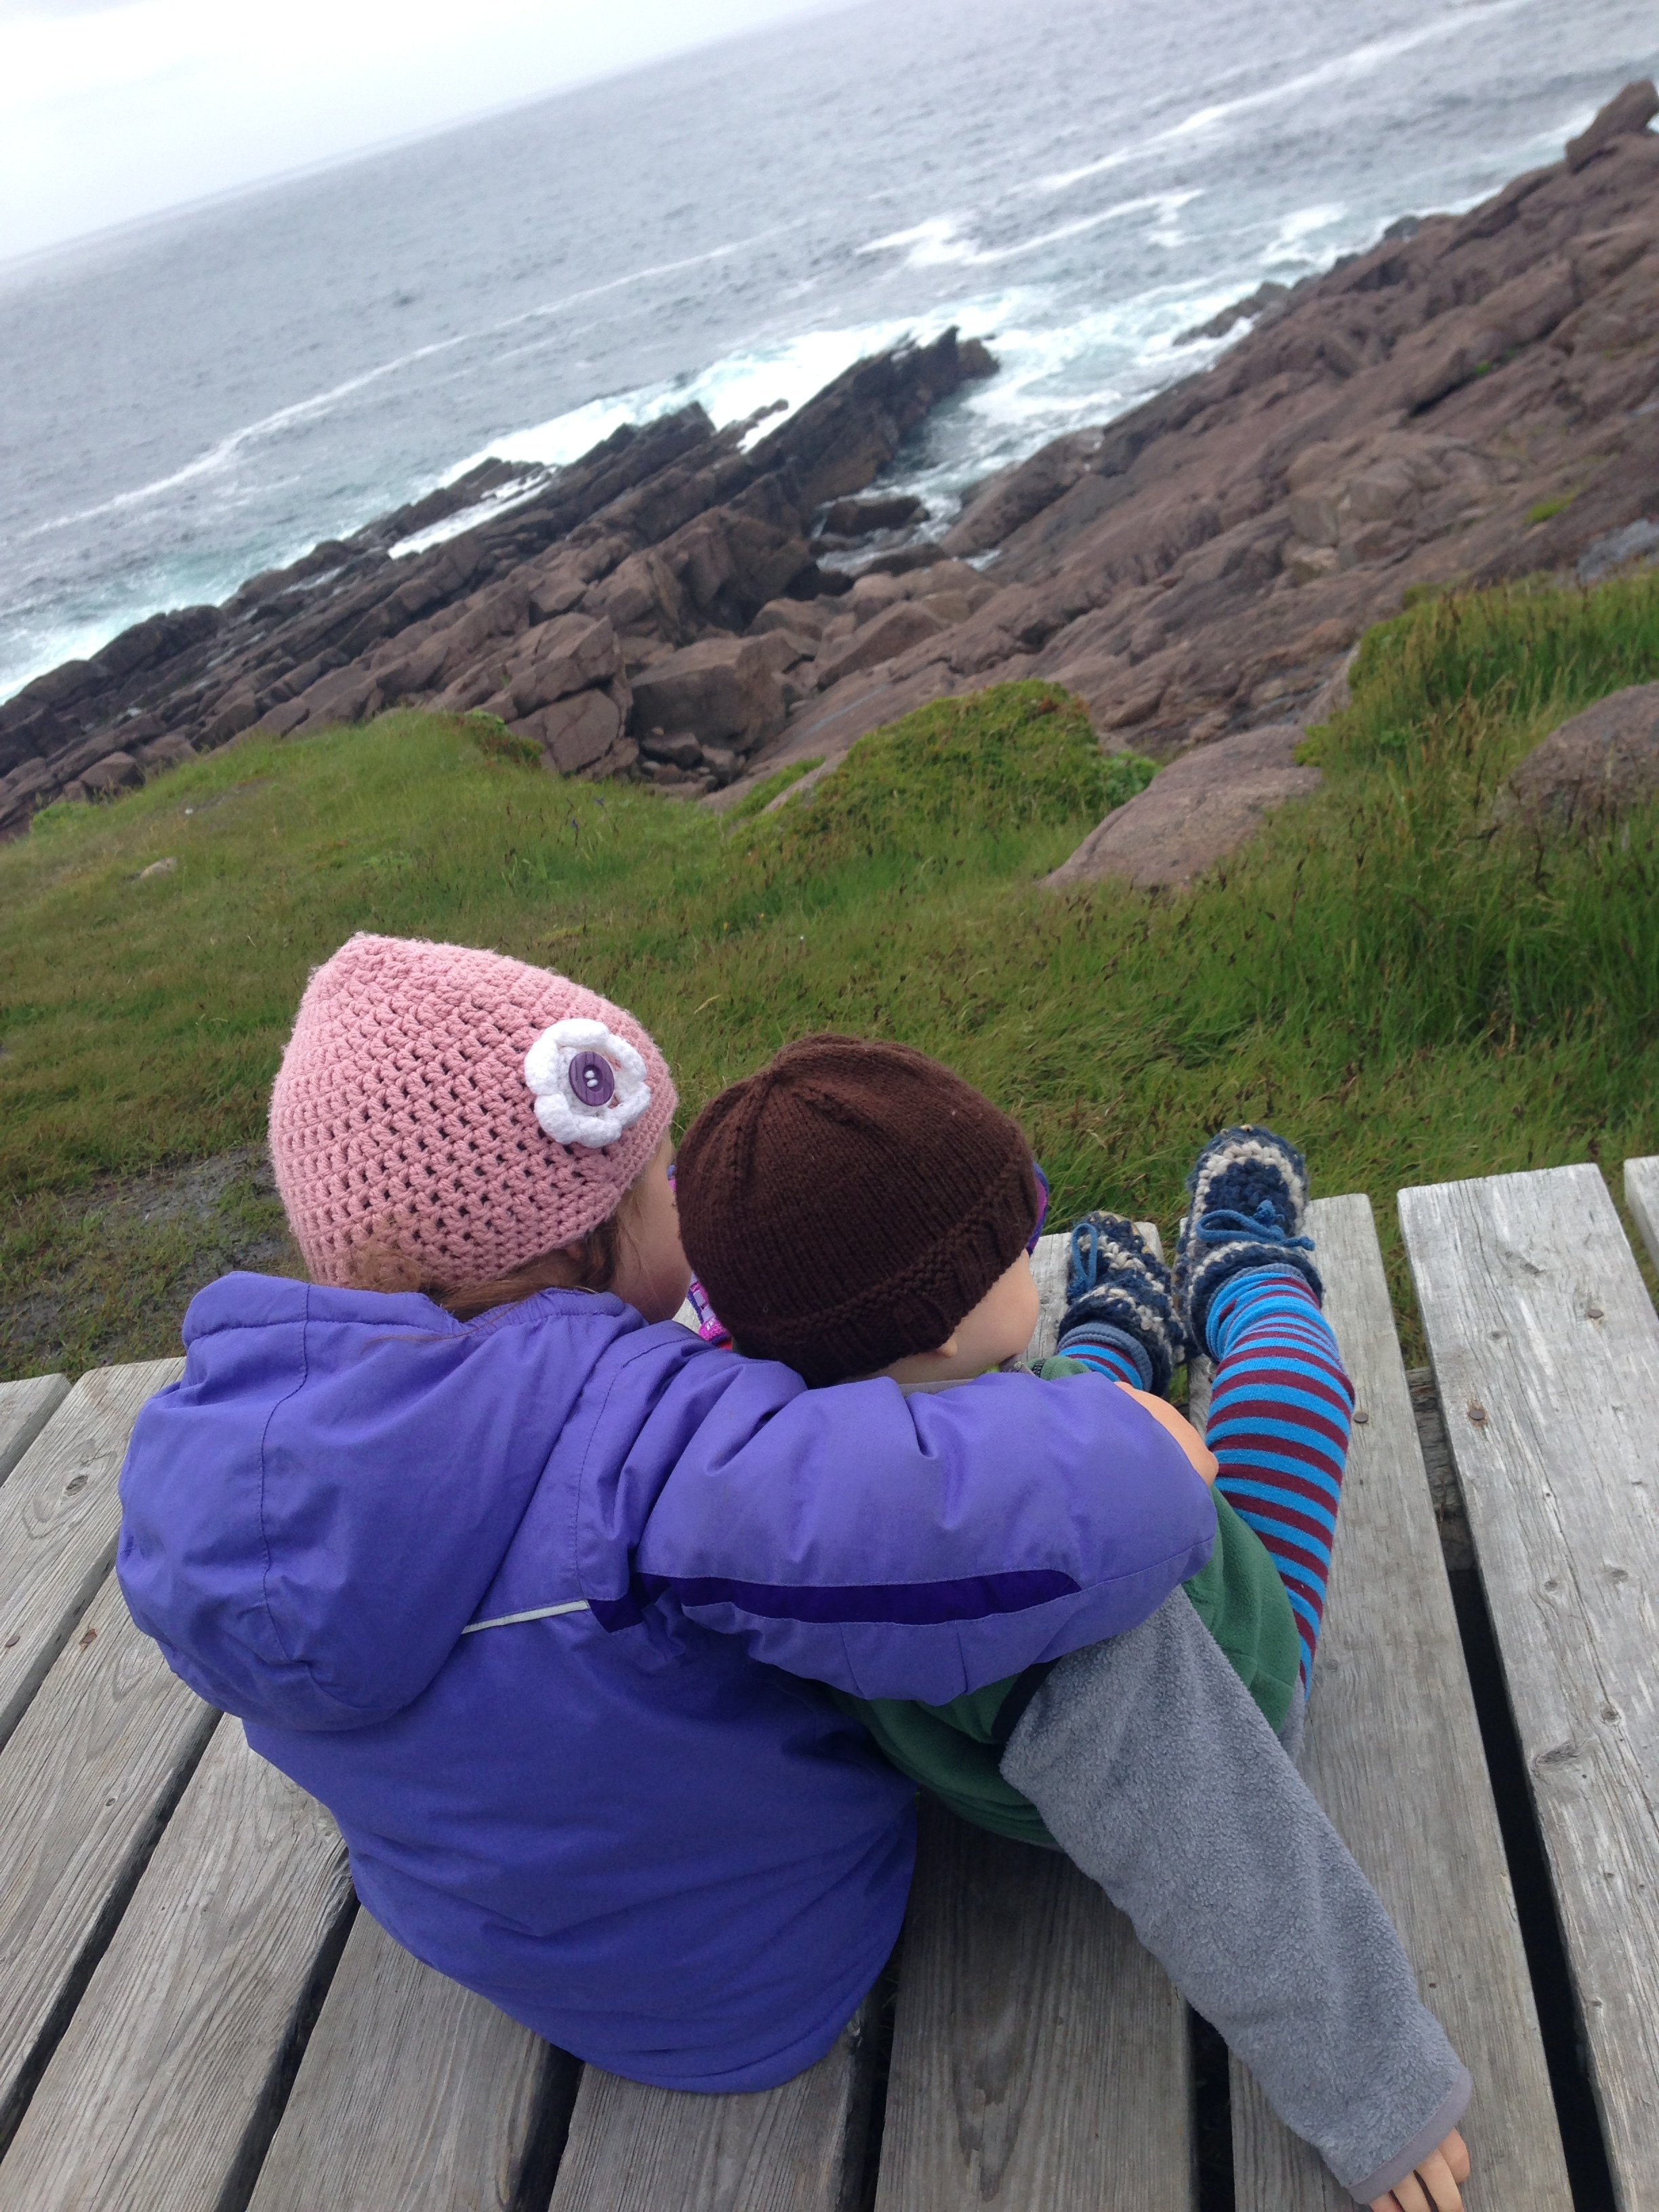 Buddies watching the waves at Cape Spear, Newfoundland.